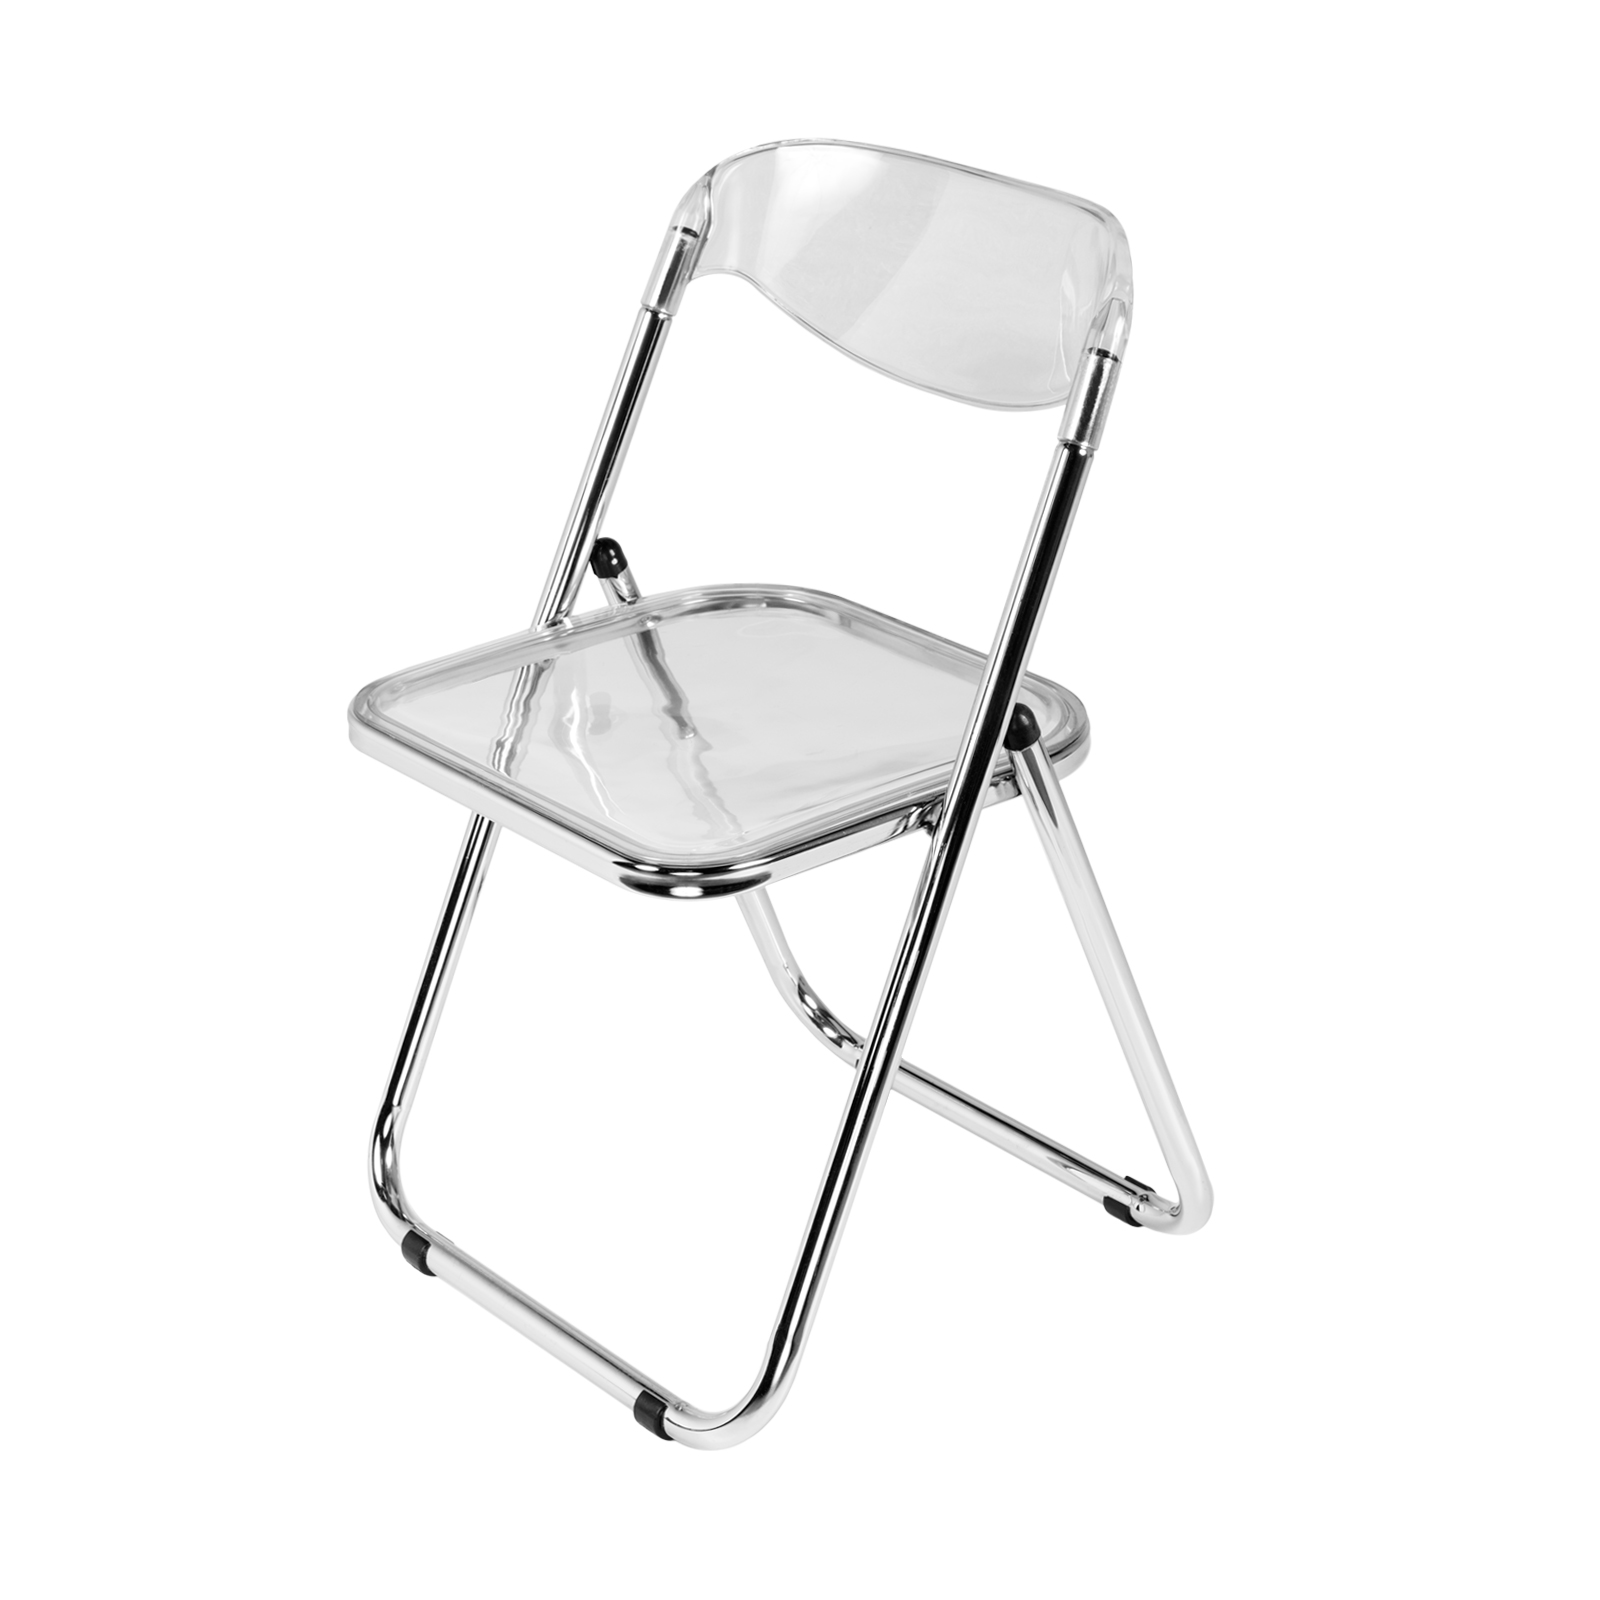 Lucite Folding Chairs Lucite Folding Chair Rental Trade Show Furniture Rental